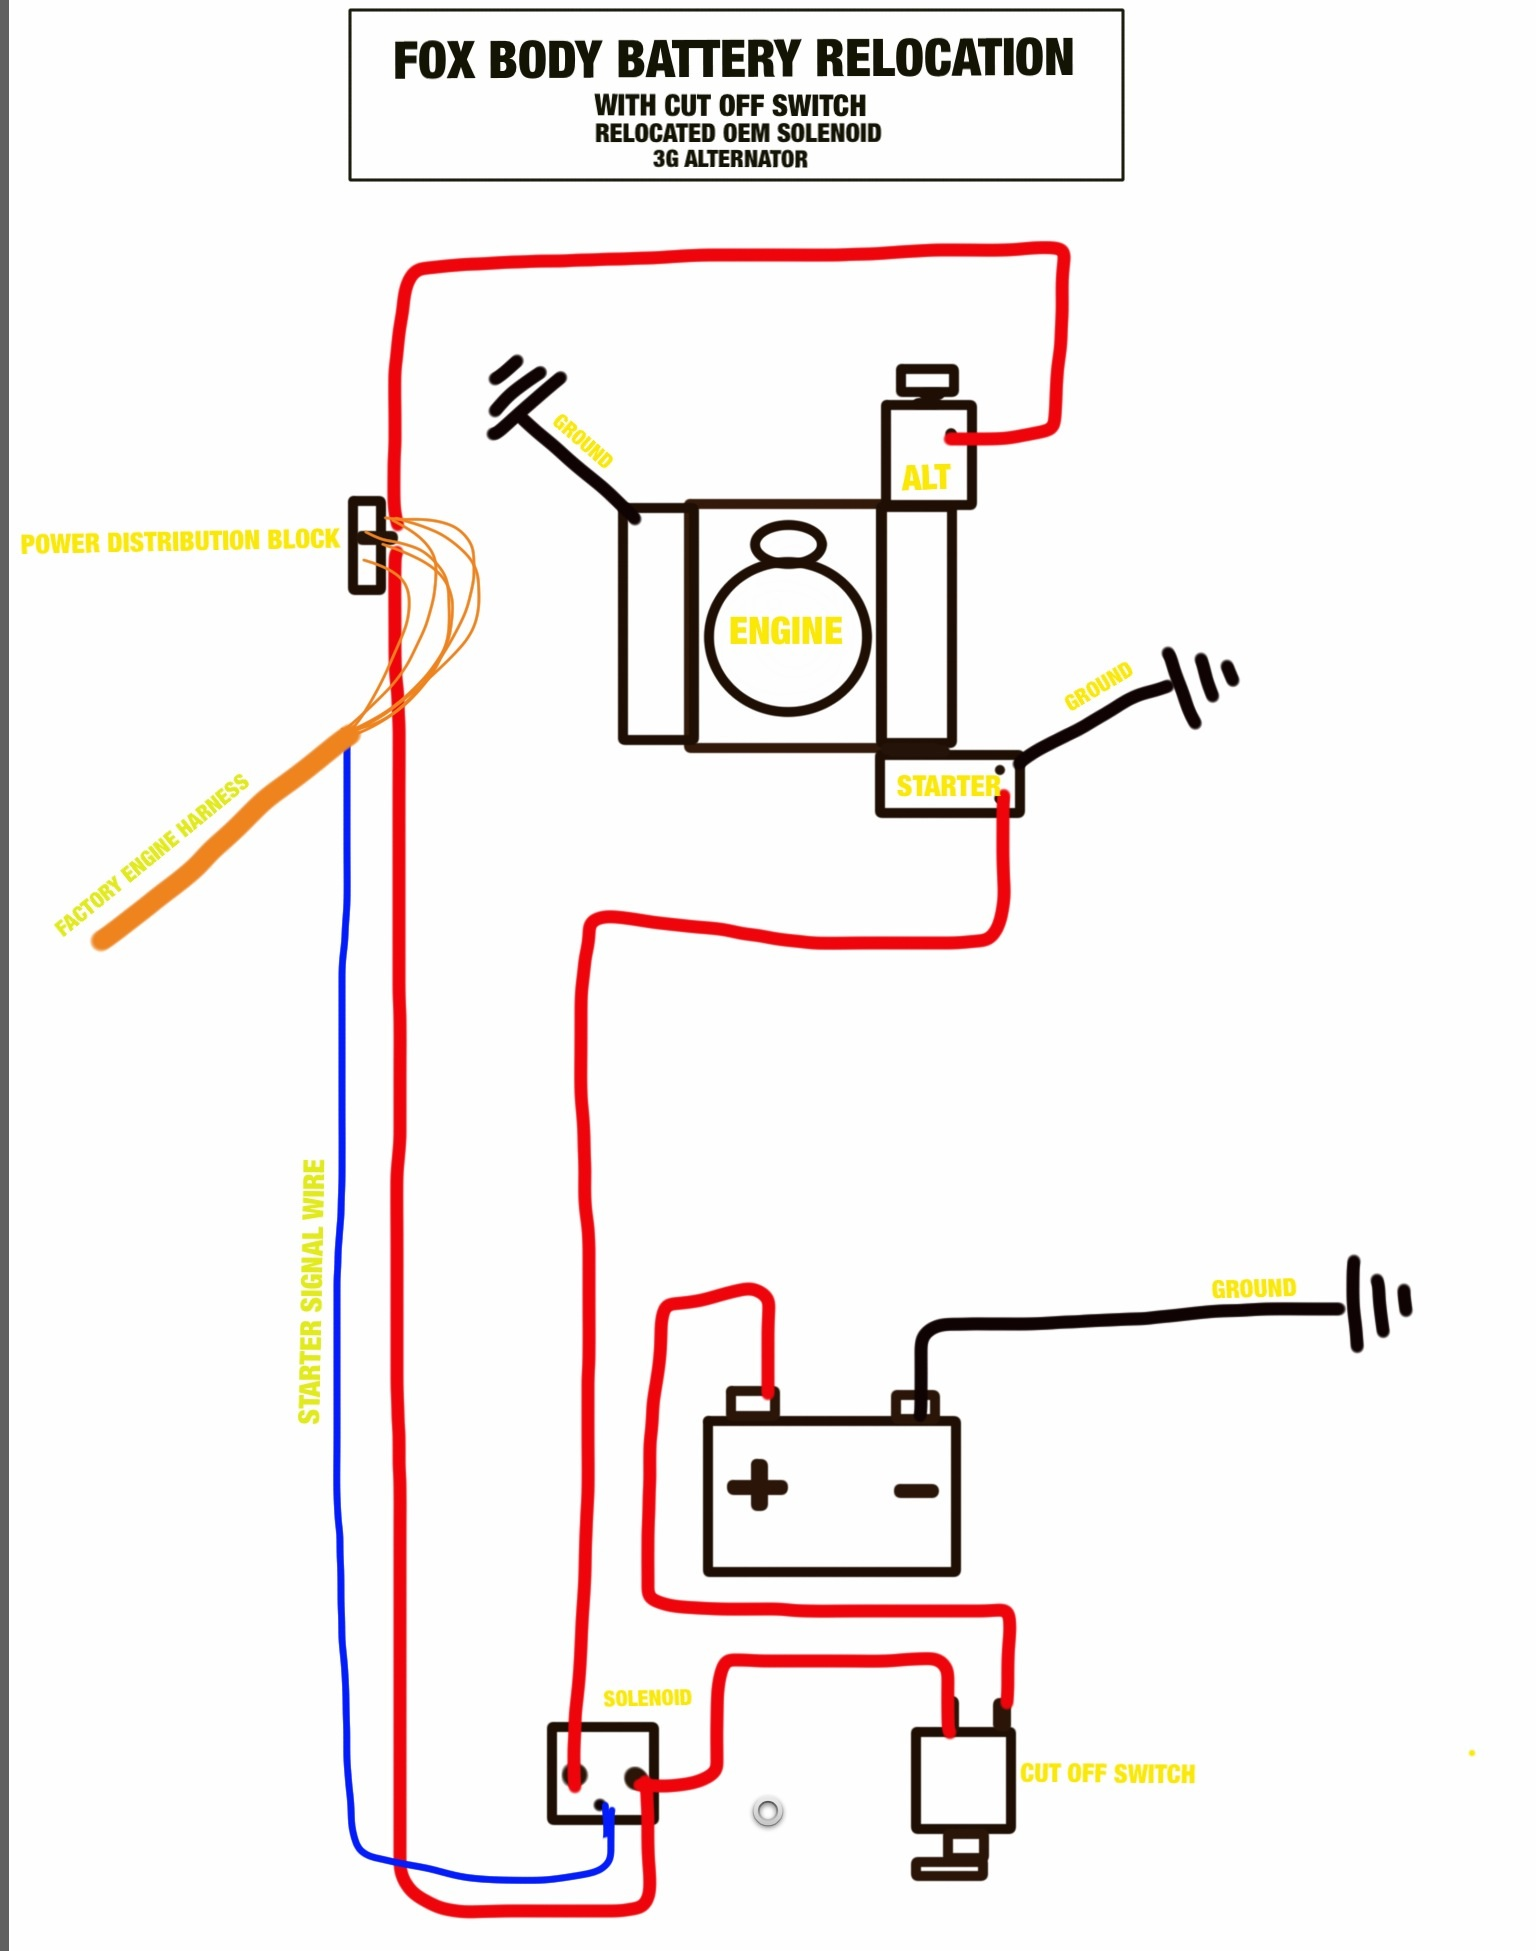 3000gt Alternator Wiring Diagram Fox Battery Relocation Mustang Forums At Stangnet